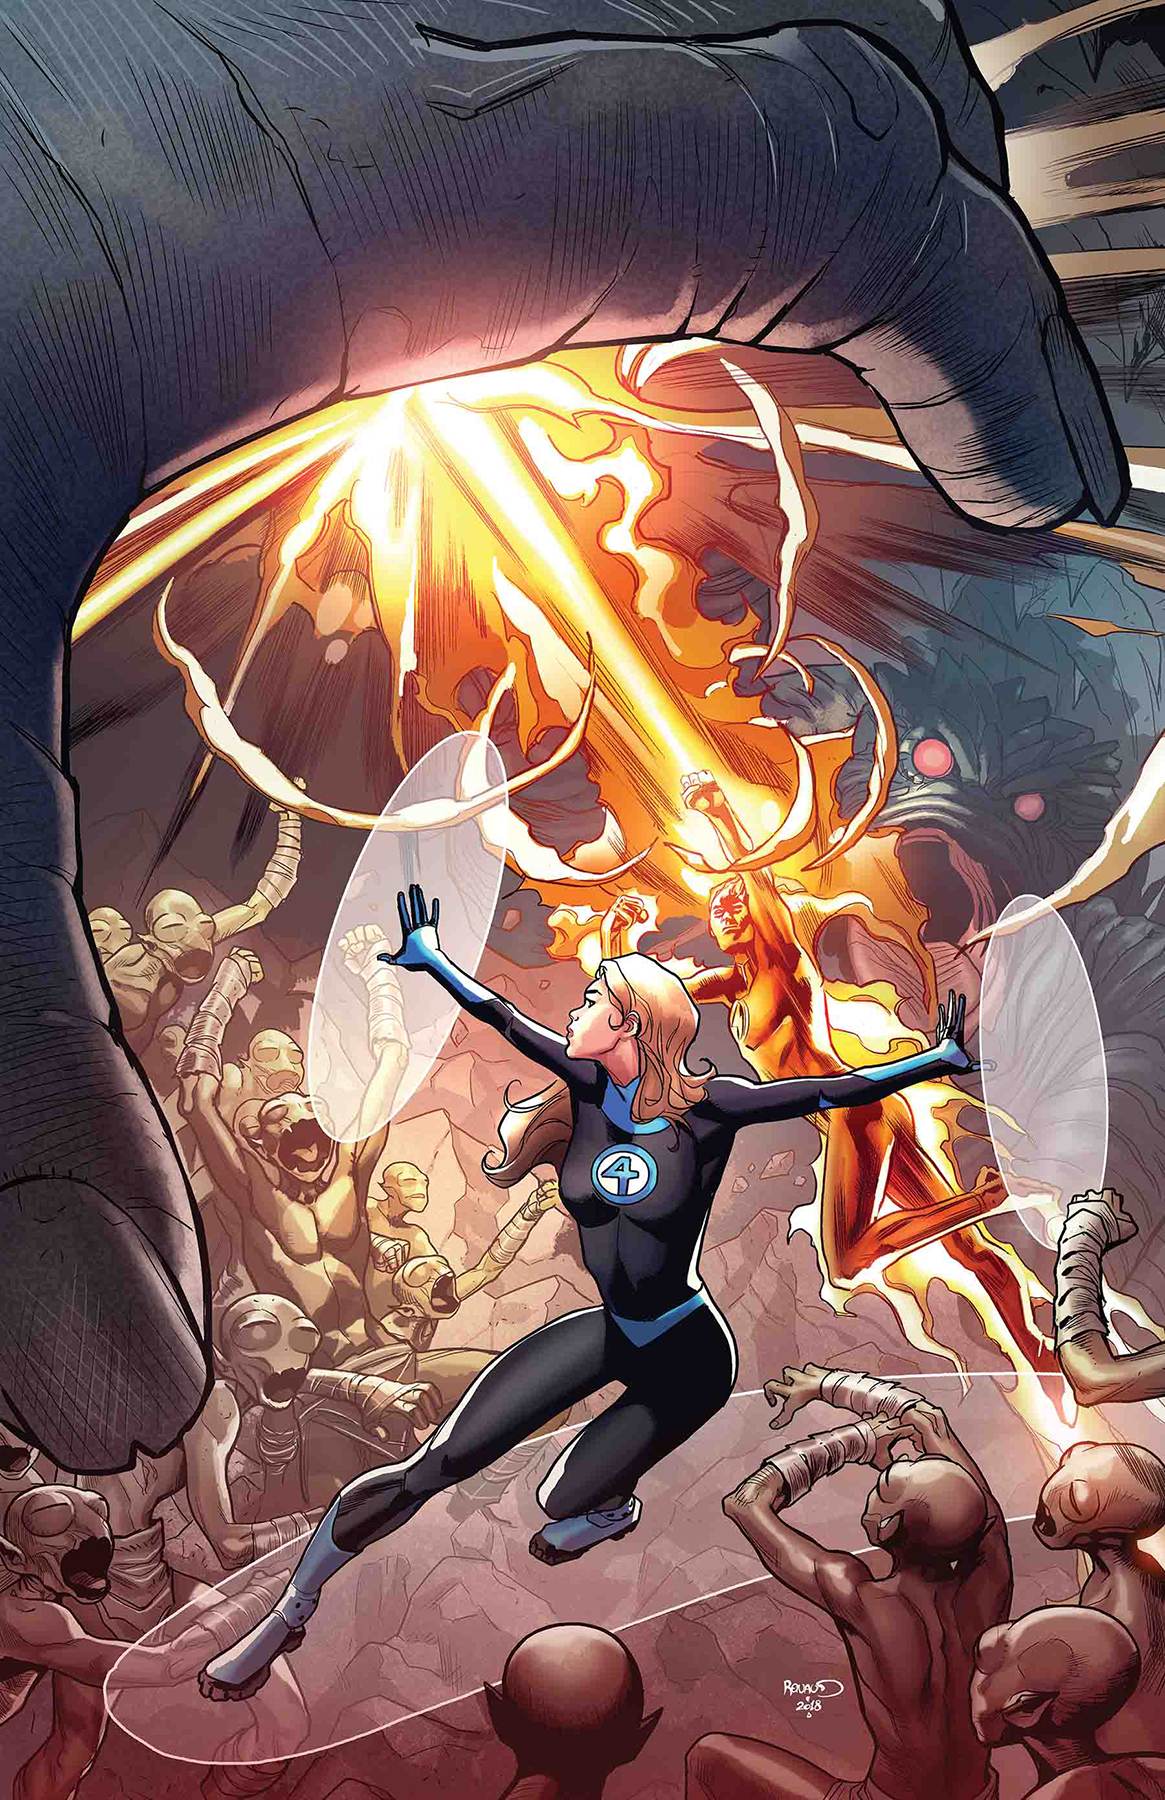 Marvel 2-in-One  concludes this week, and what a wonderful ride it has been.